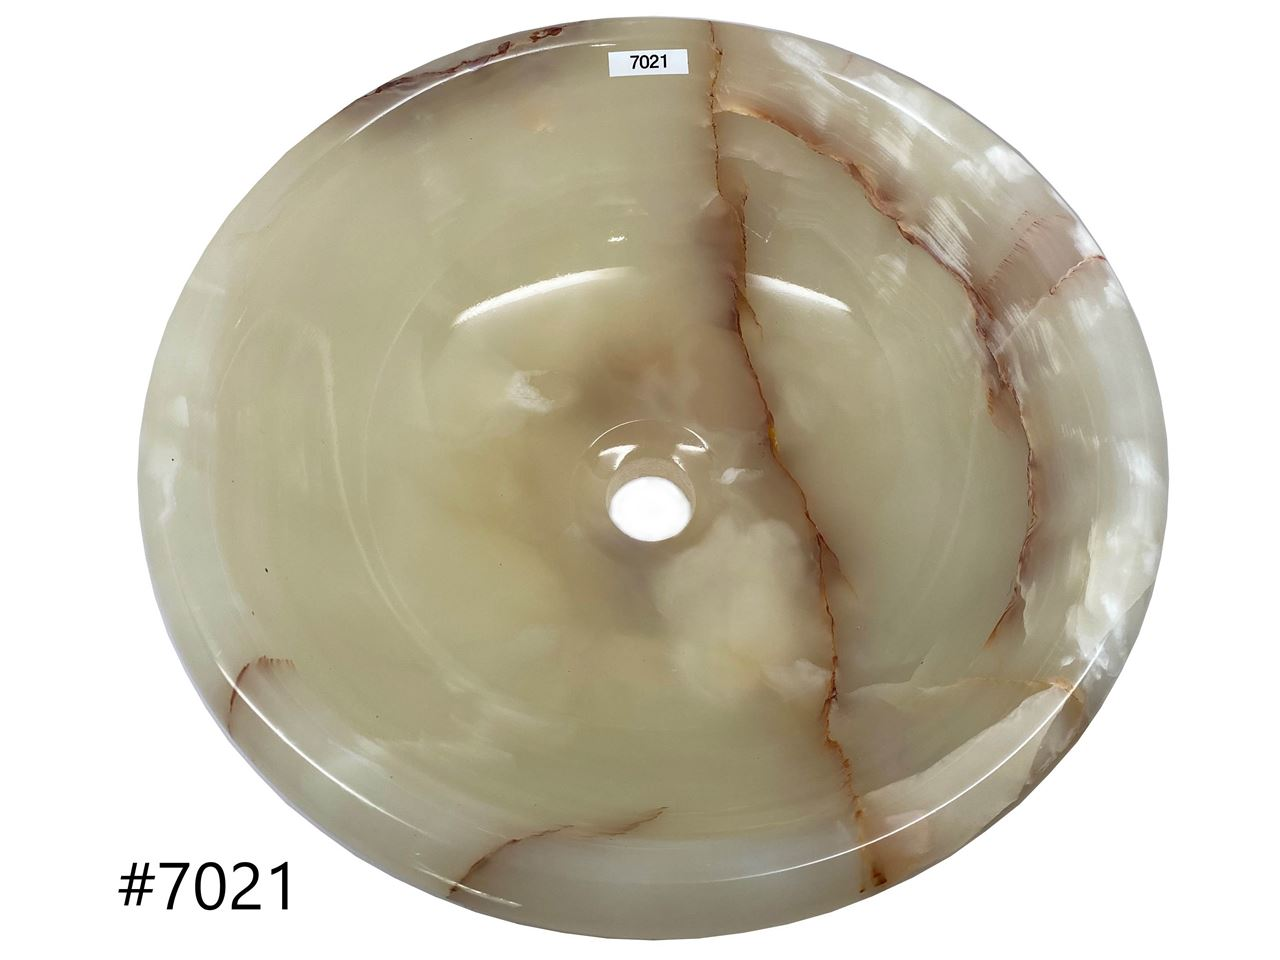 Picture of SoLuna White Rounded Onyx Vessel Bath Sink - Sale